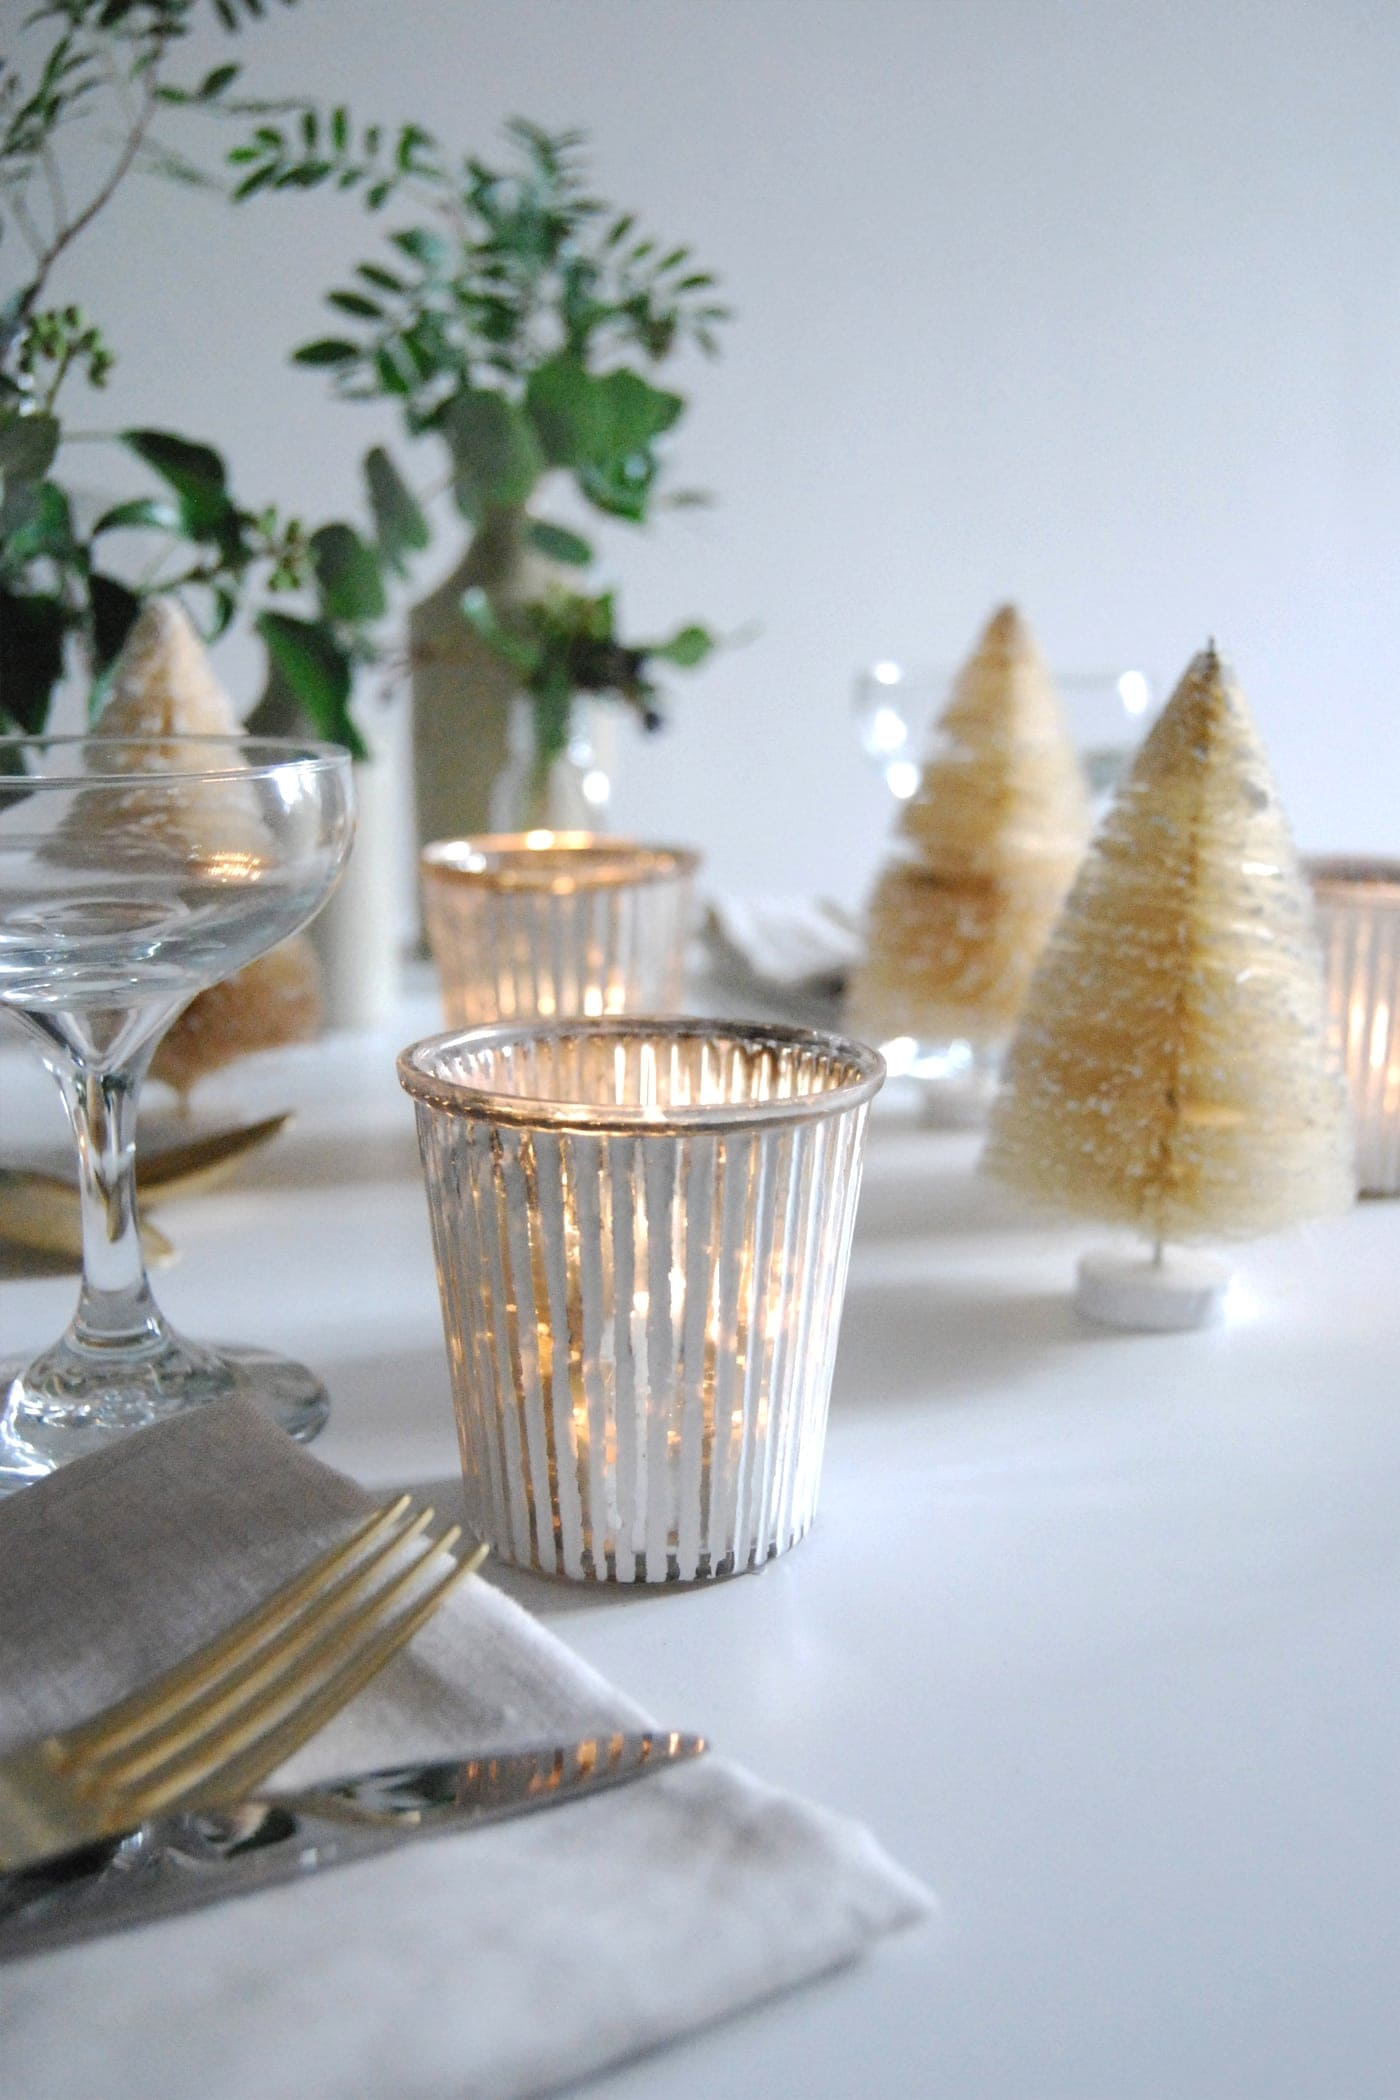 12 styled days of Christmas with West Elm | Cate St Hill | styled table